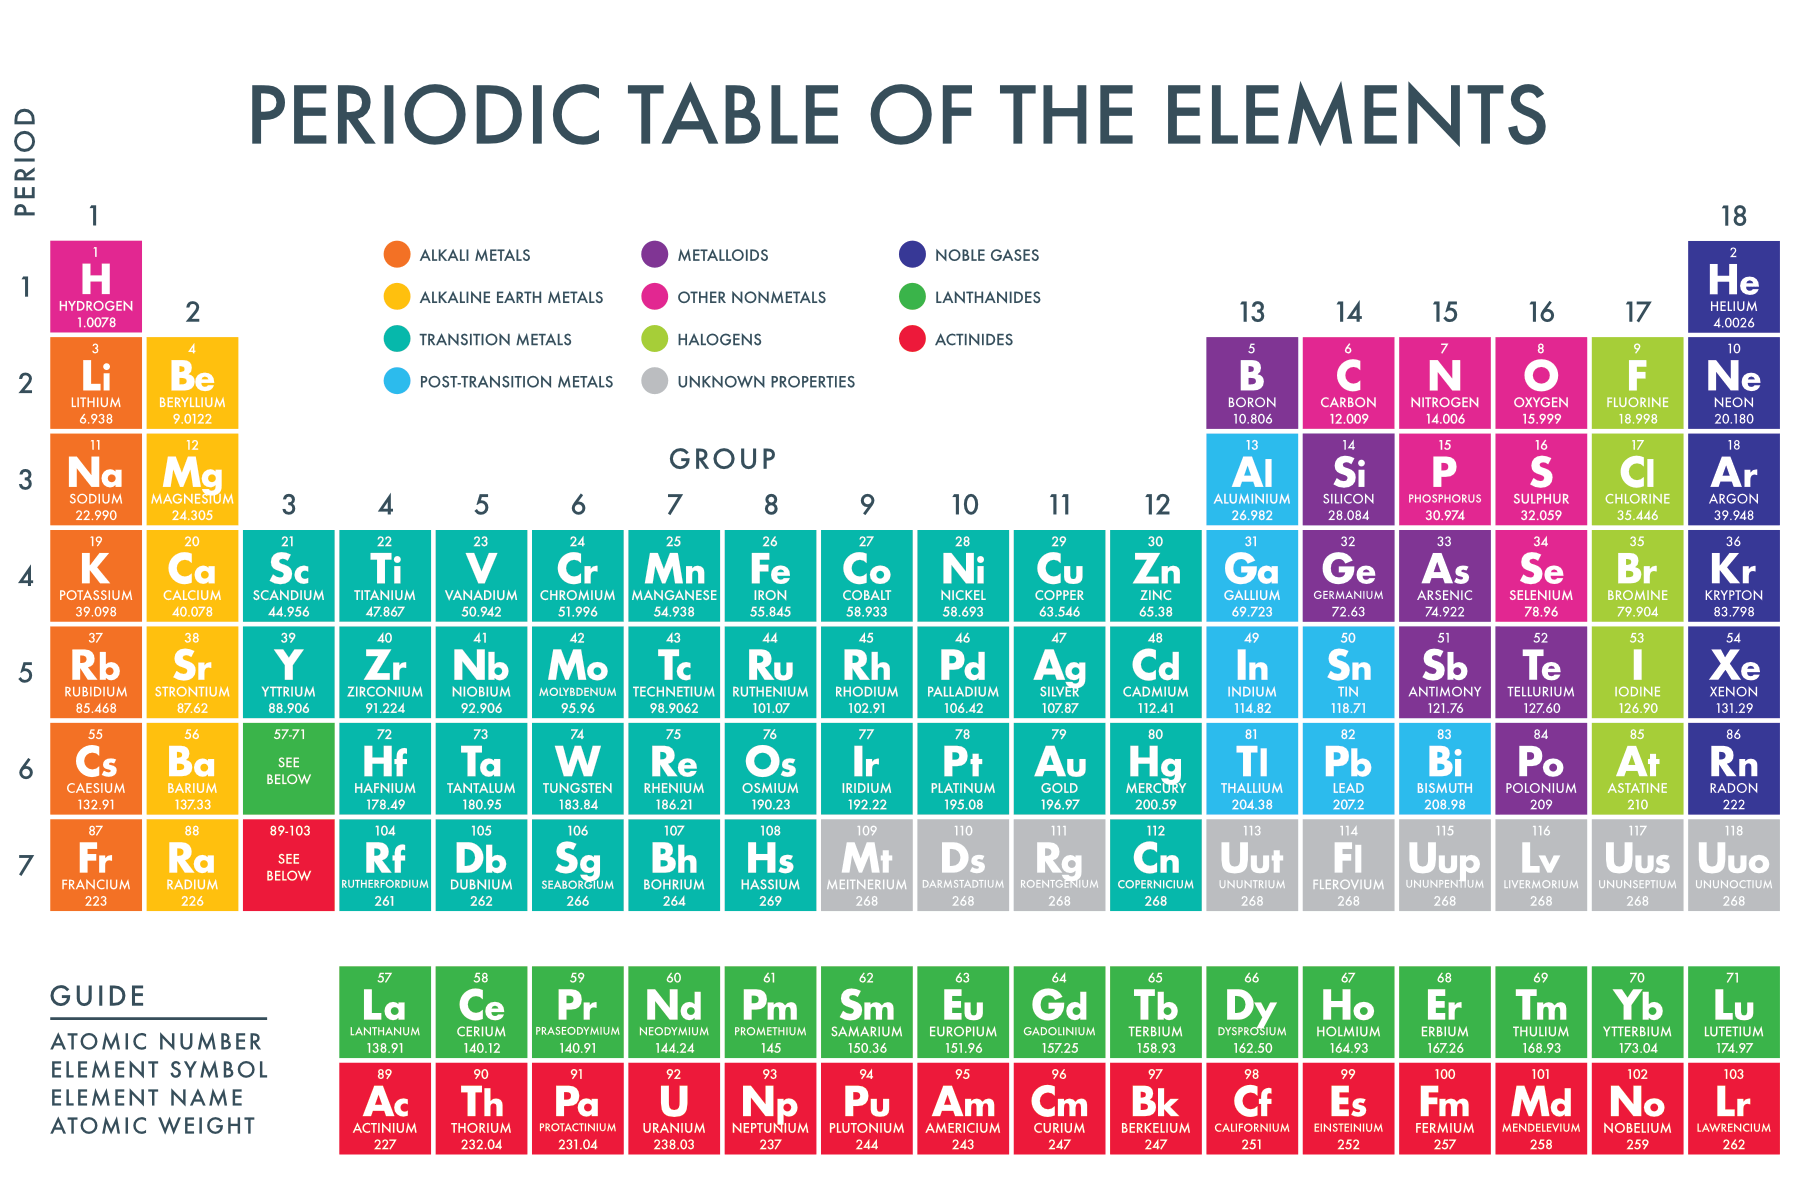 Periodic Table of the Elements - PAPERZIP